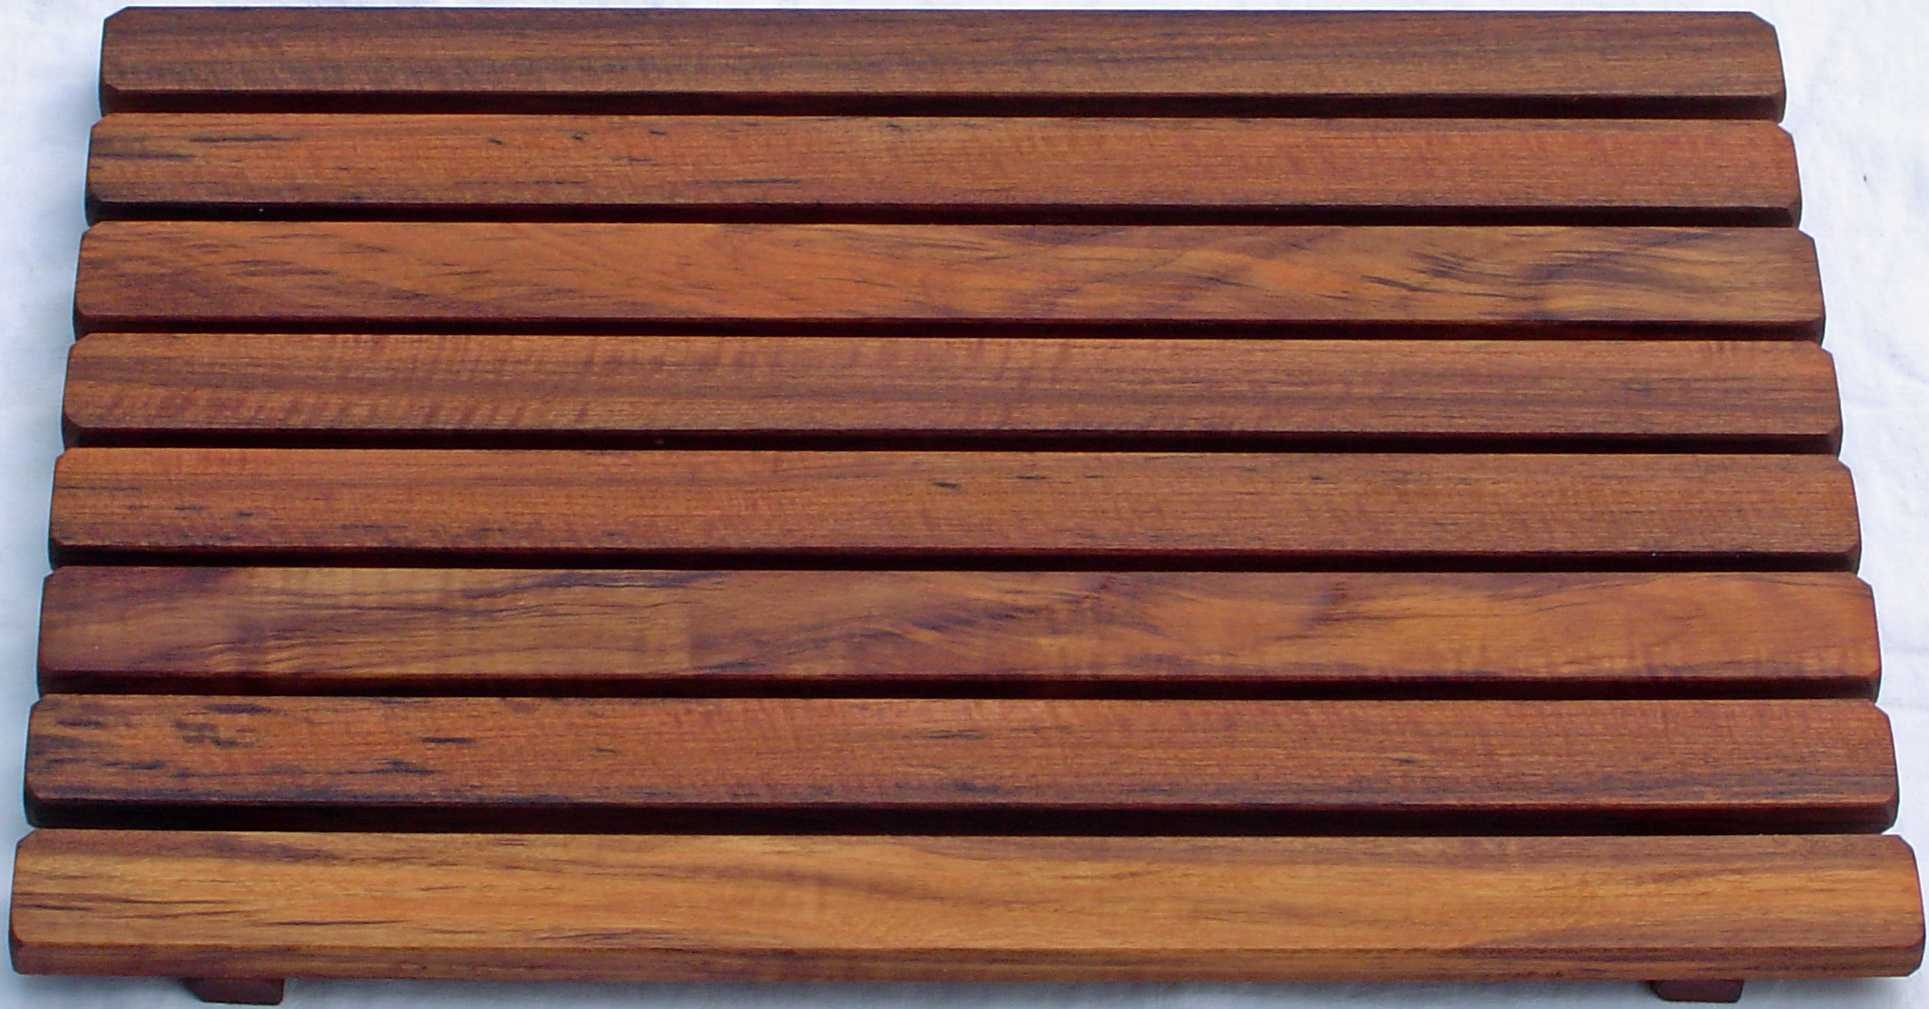 Dark Wooden Bath Mats